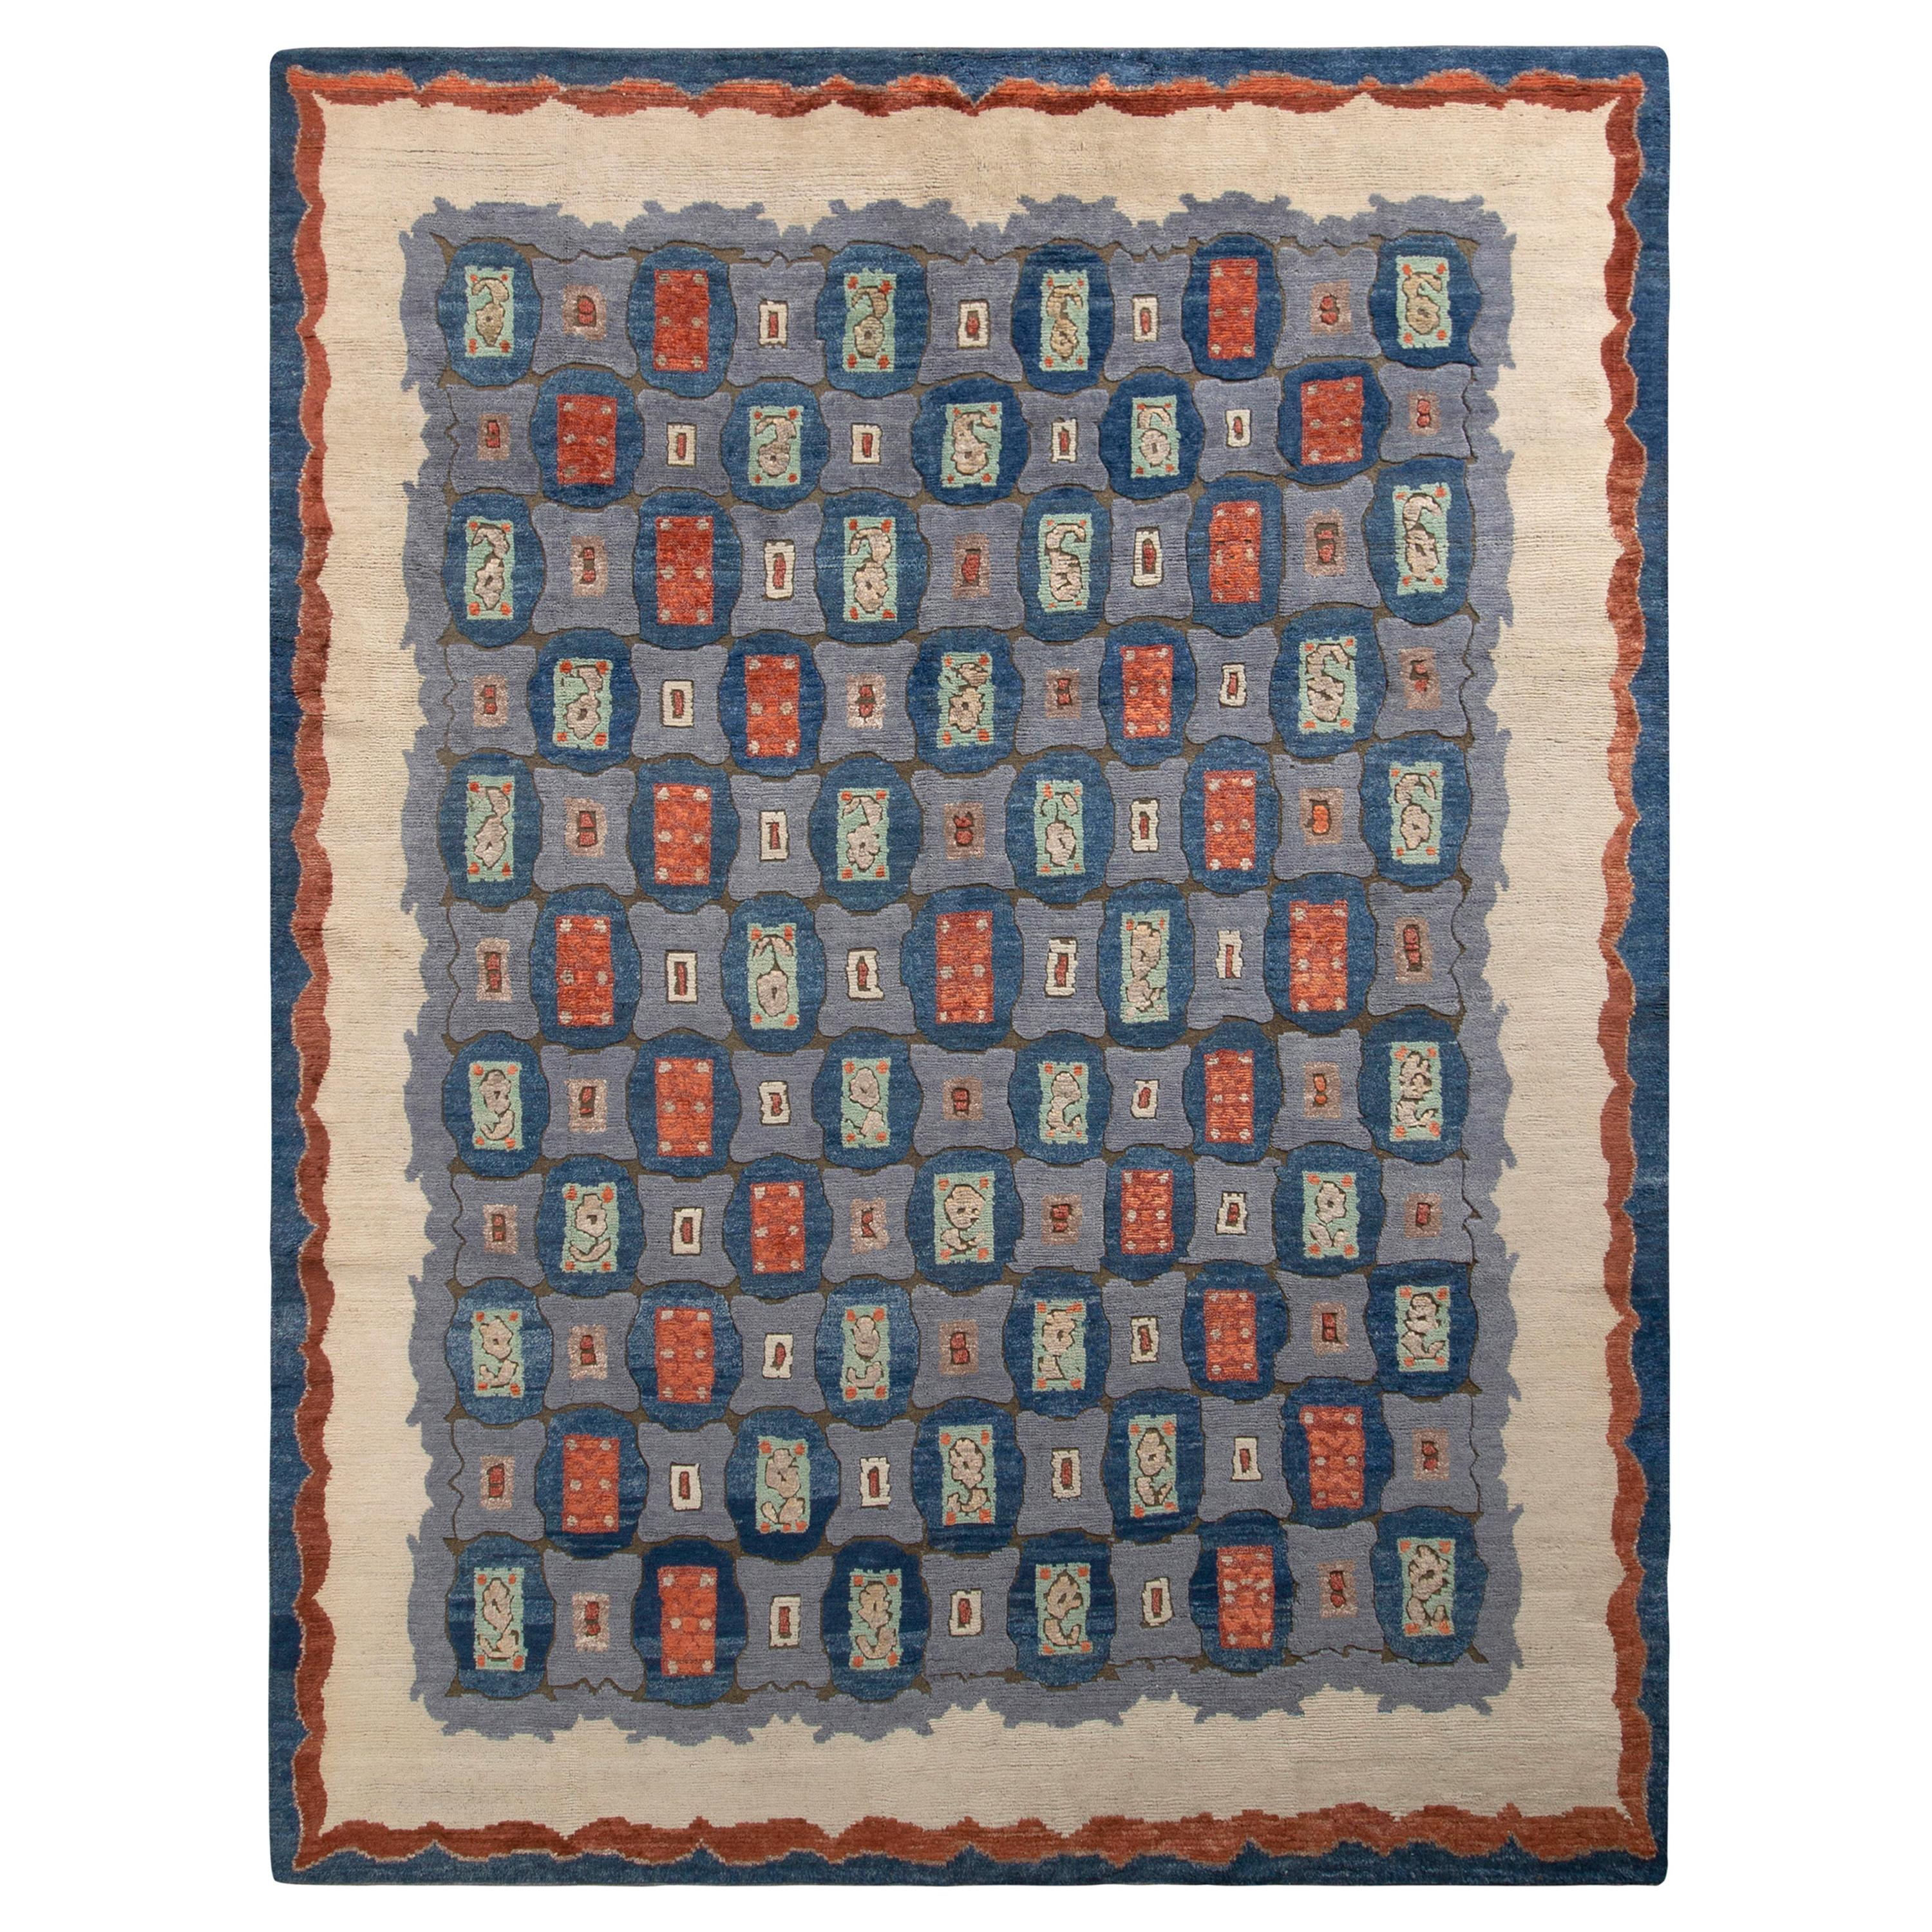 Rug & Kilim's Art Deco Style Rug in Blue All Over Geometric Pattern